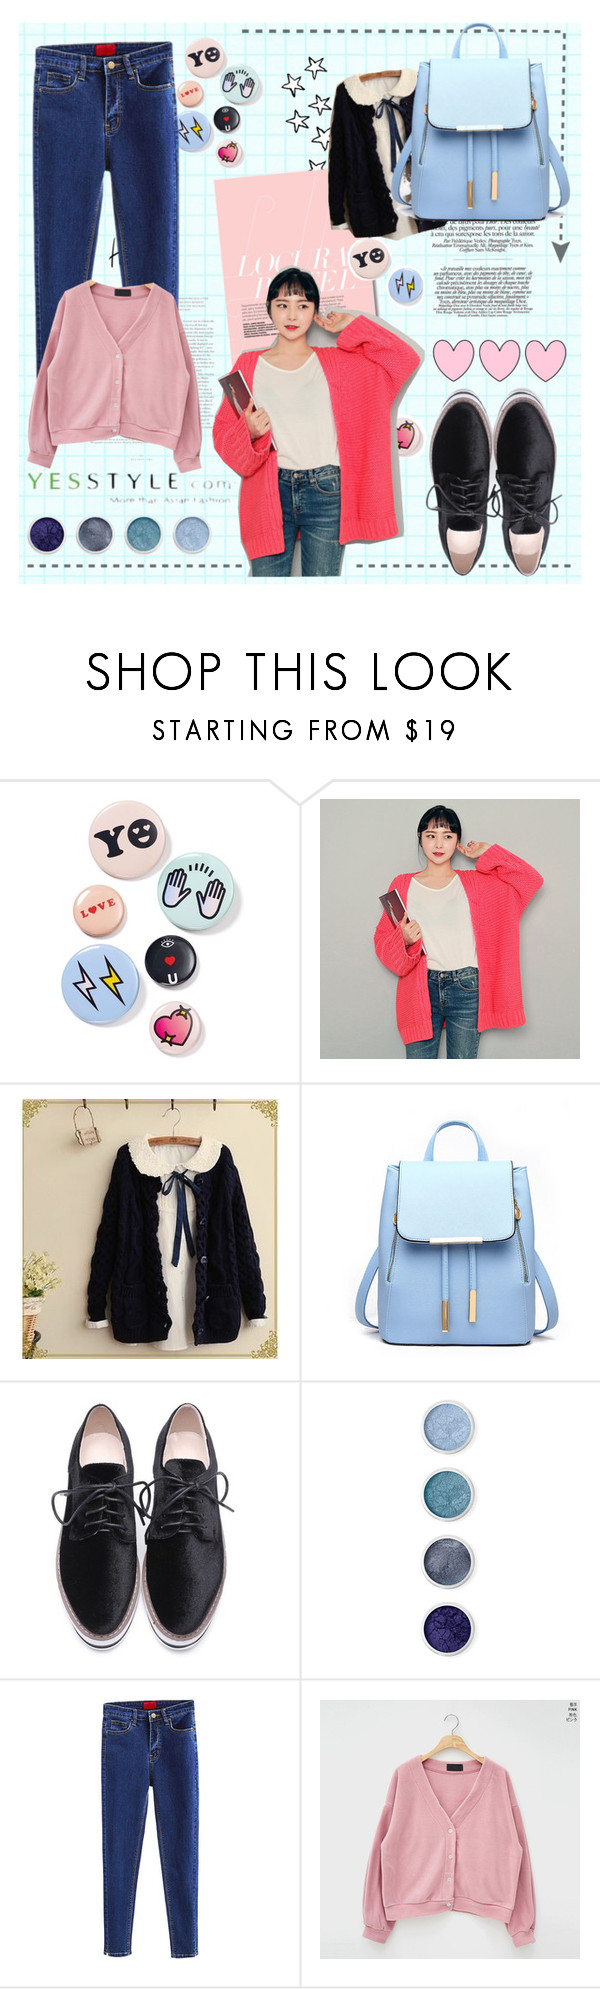 """""""yesstyle"""" by tux-vij on Polyvore featuring Bing Bang, Fairyland, Terre Mère, Winter, ootd, cardigans and yesstyle"""